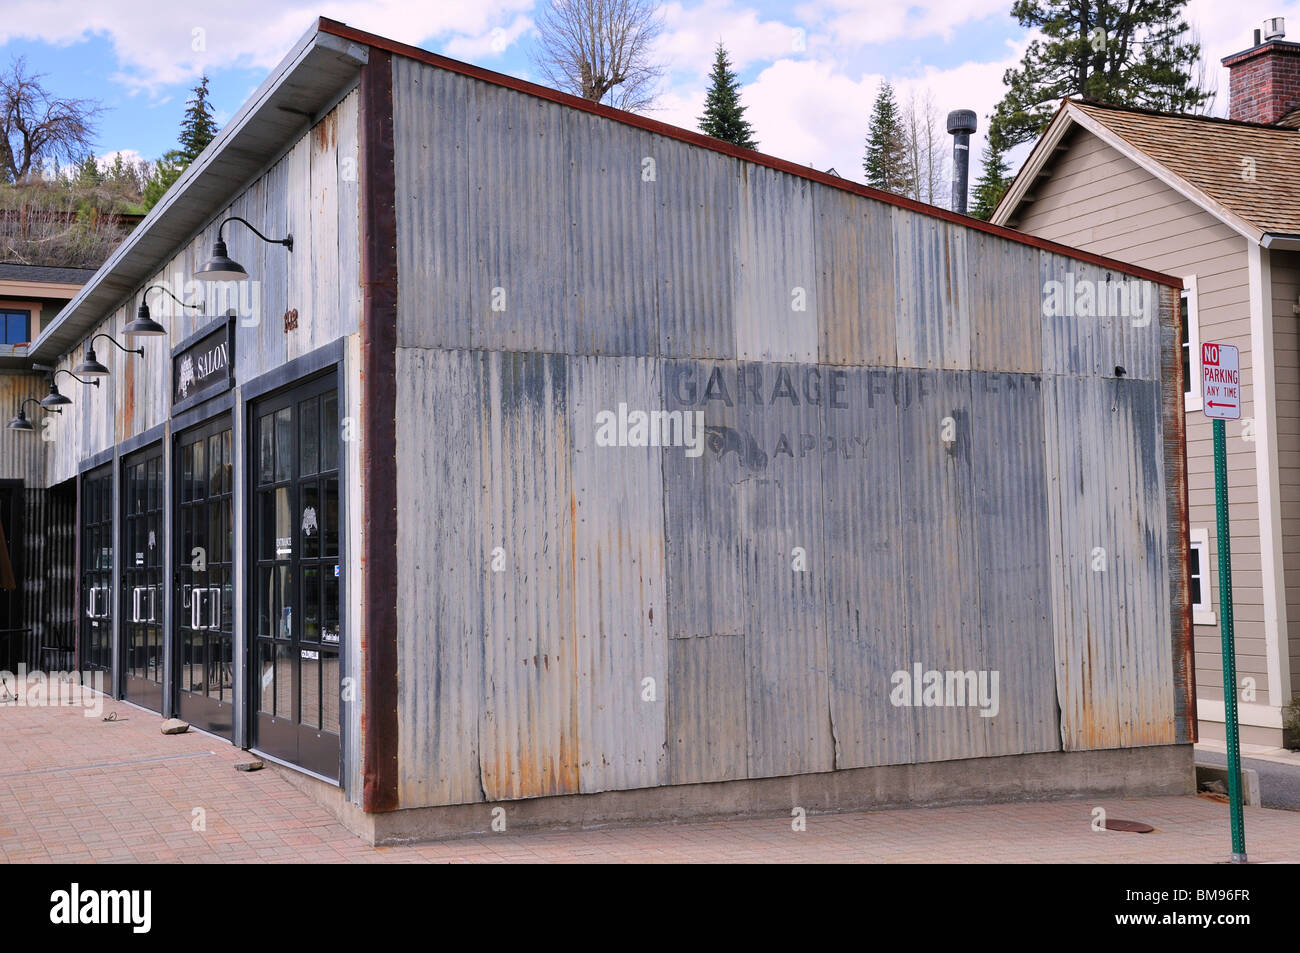 An Old Corrugated Metal Sided Building In Truckee Which